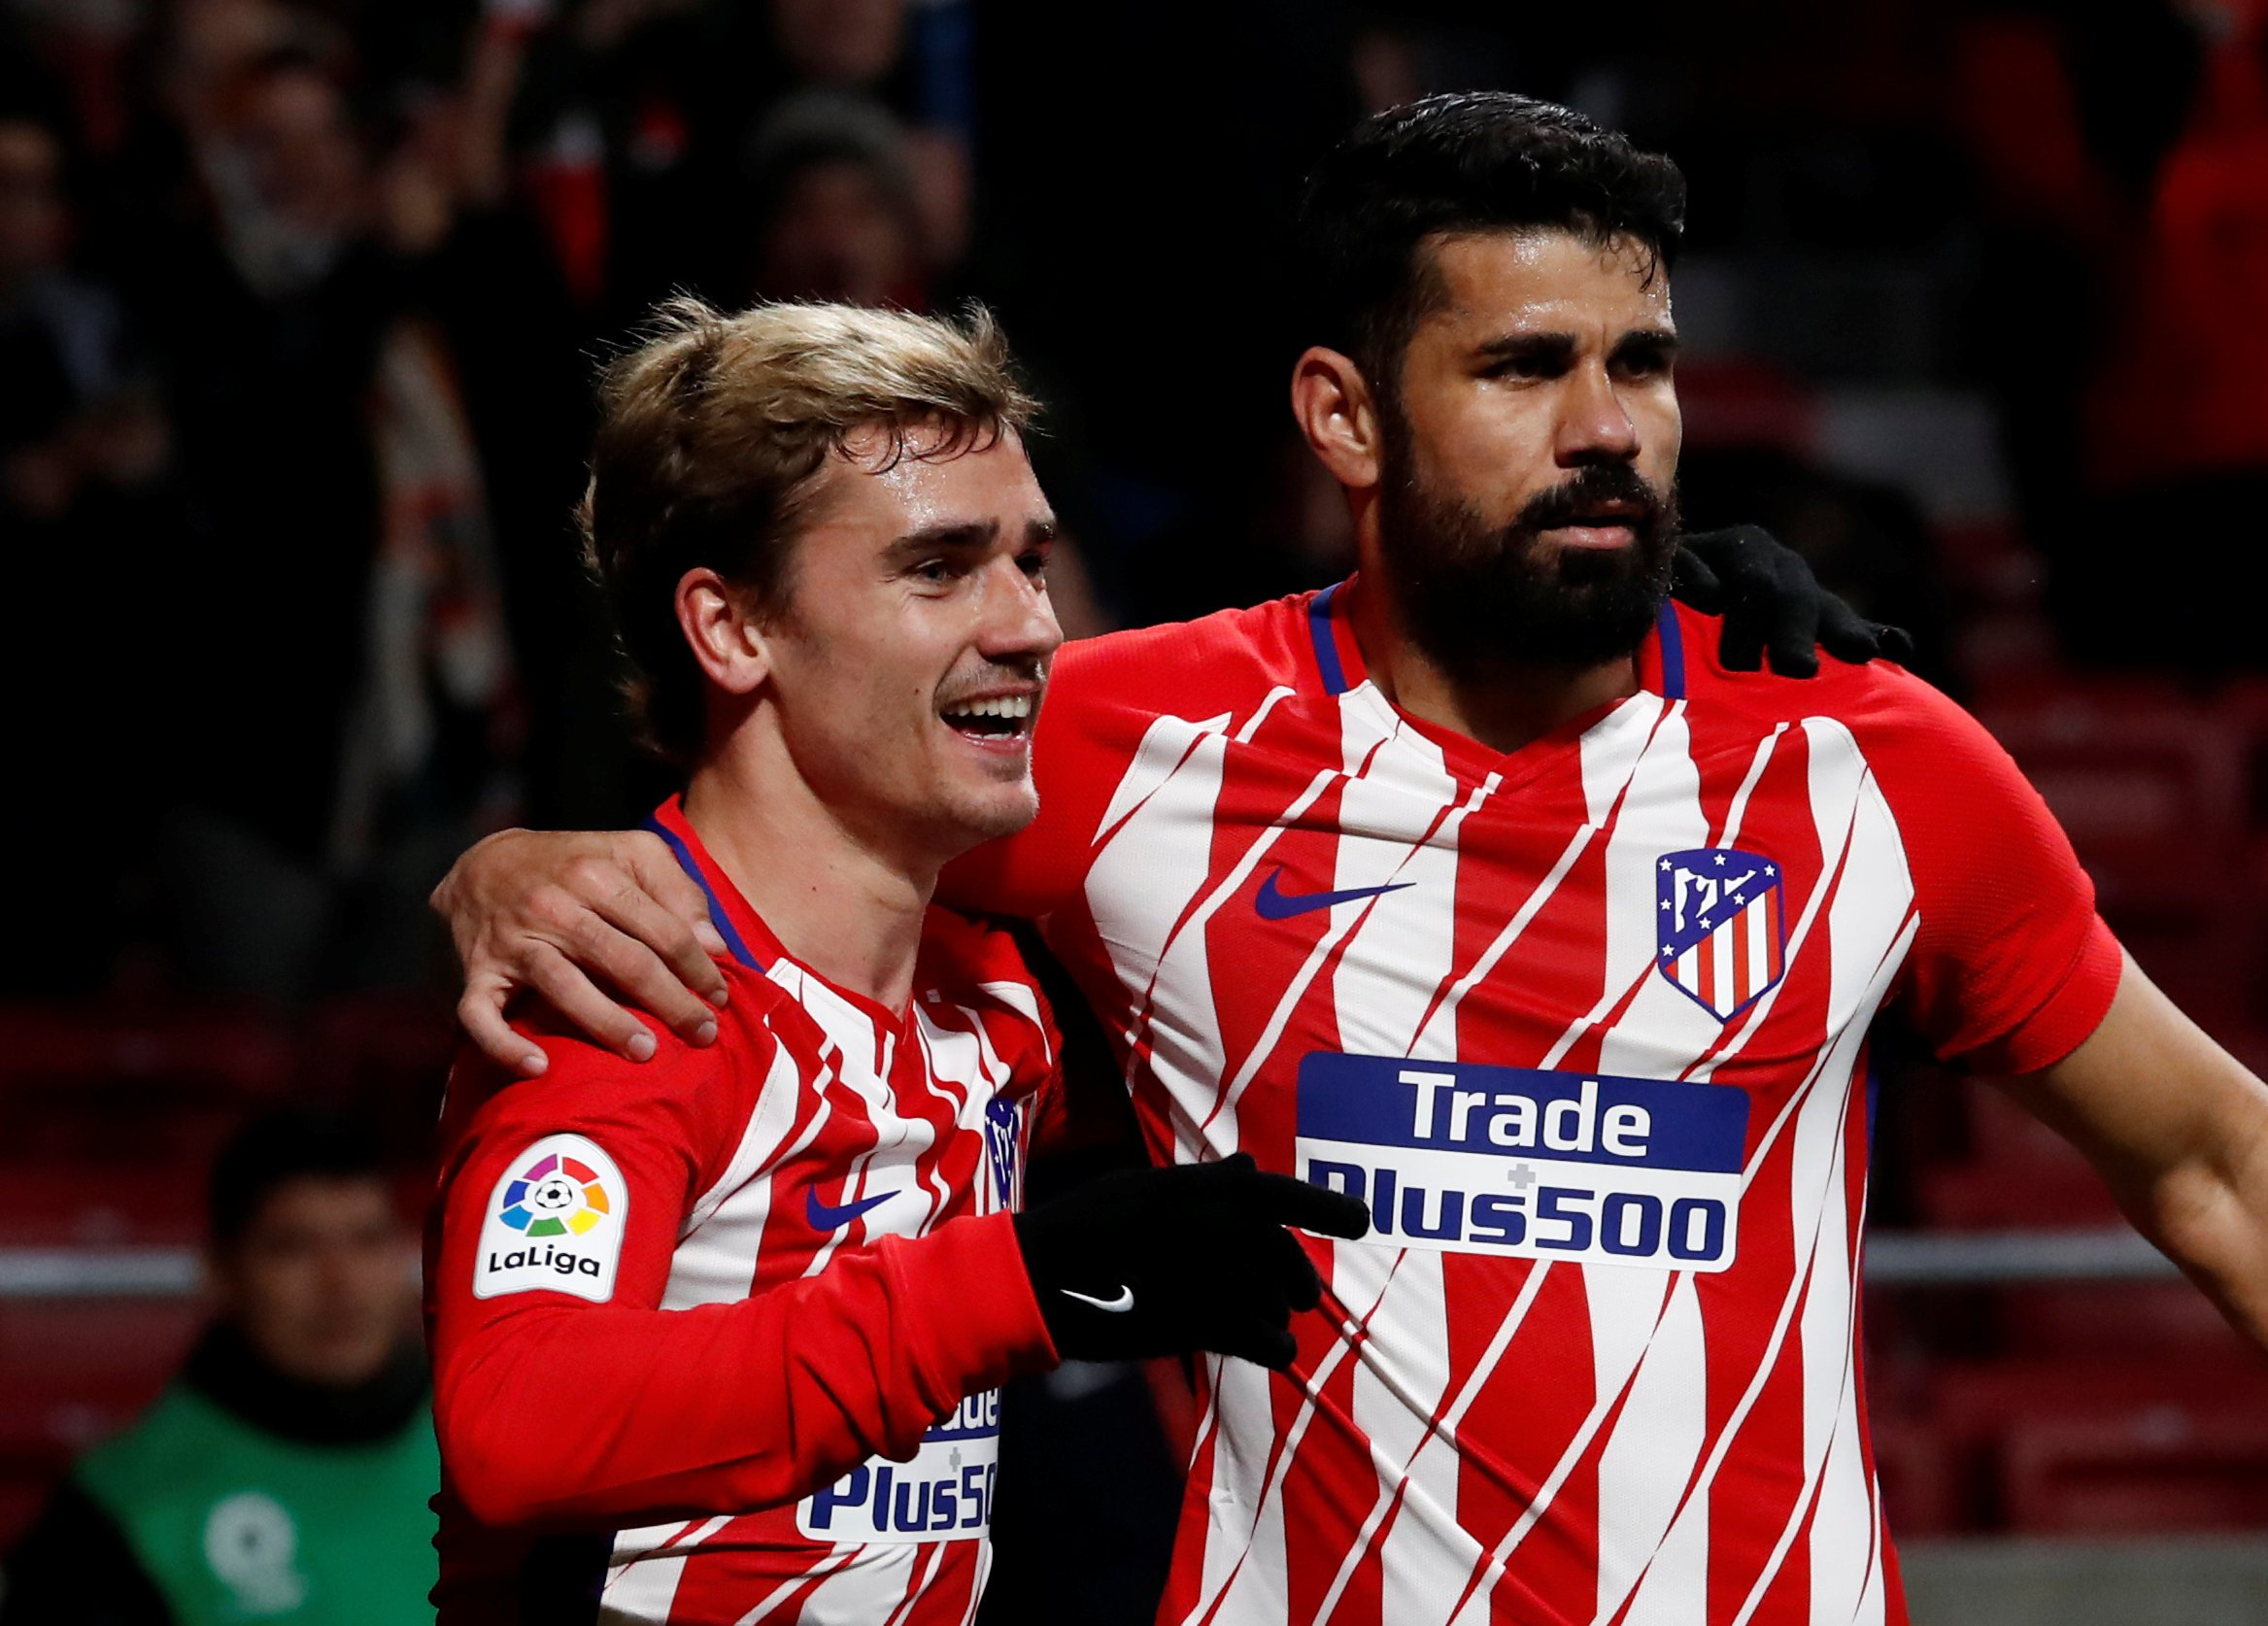 Soccer Football - La Liga Santander - Atletico Madrid vs Leganes - Wanda Metropolitano, Madrid, Spain - February 28, 2018 Atletico Madrid???s Antoine Griezmann celebrates scoring their first goal with Diego Costa REUTERS/Juan Medina